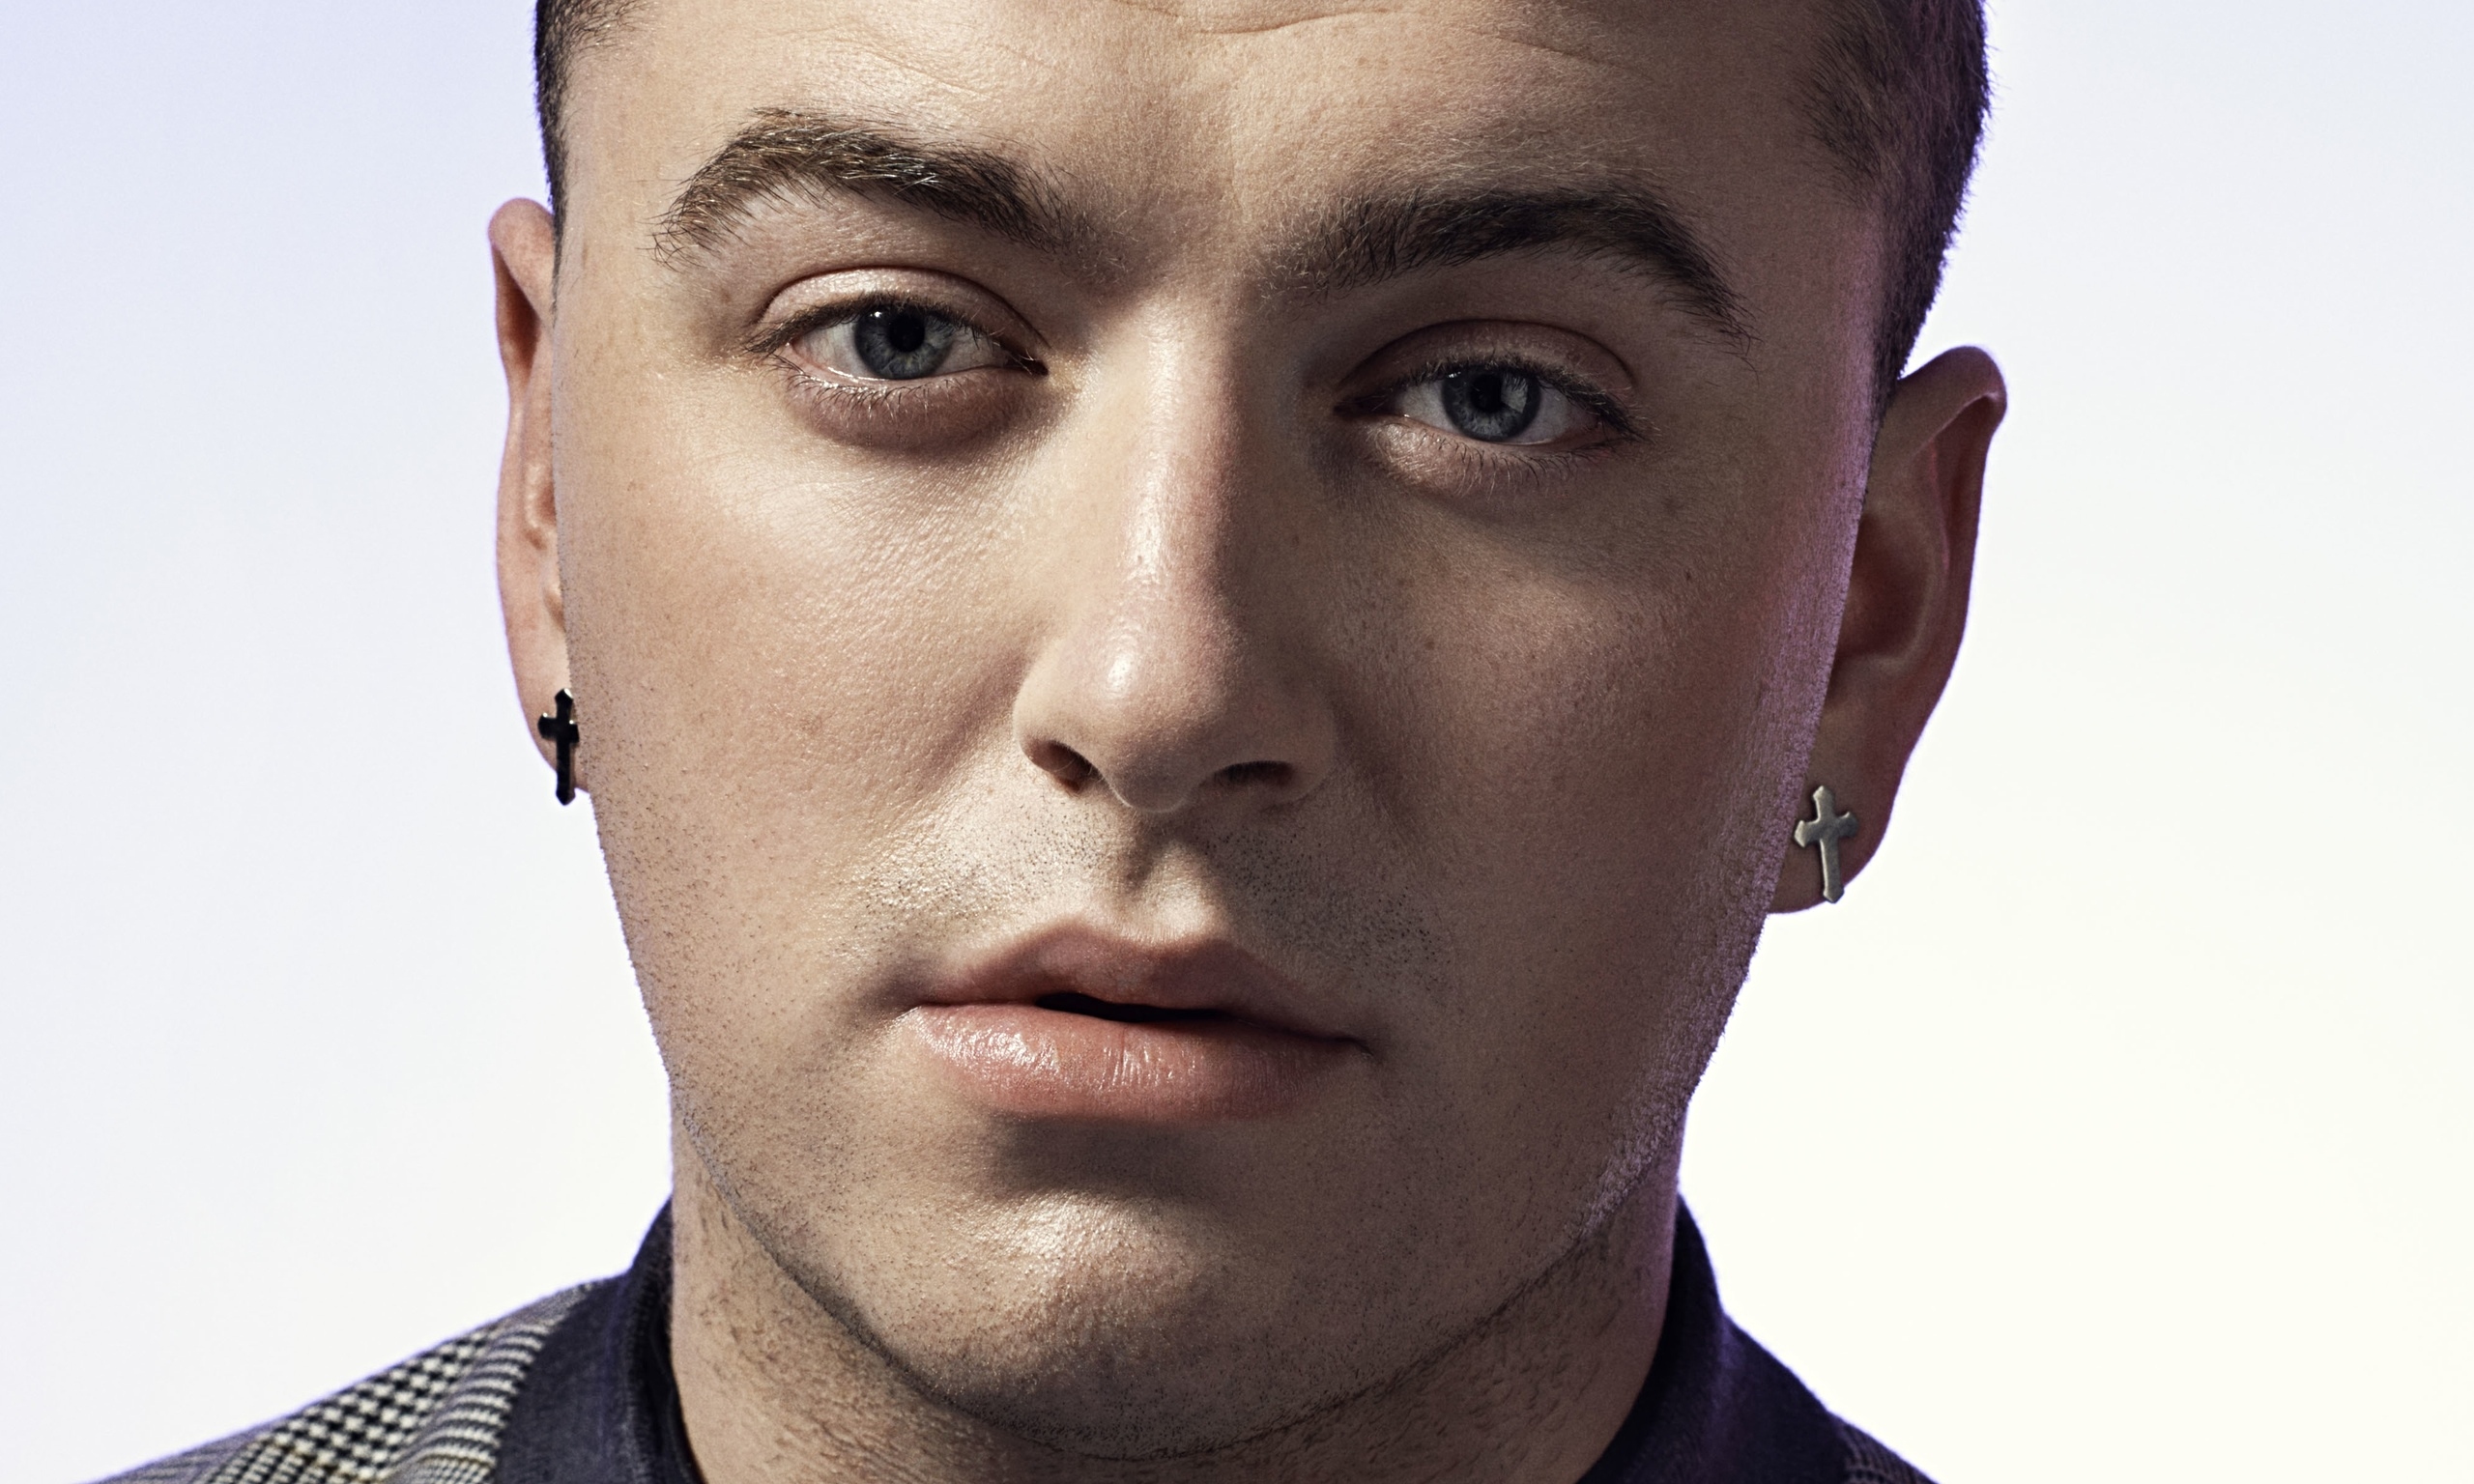 sam smith face wallpaper background 62209